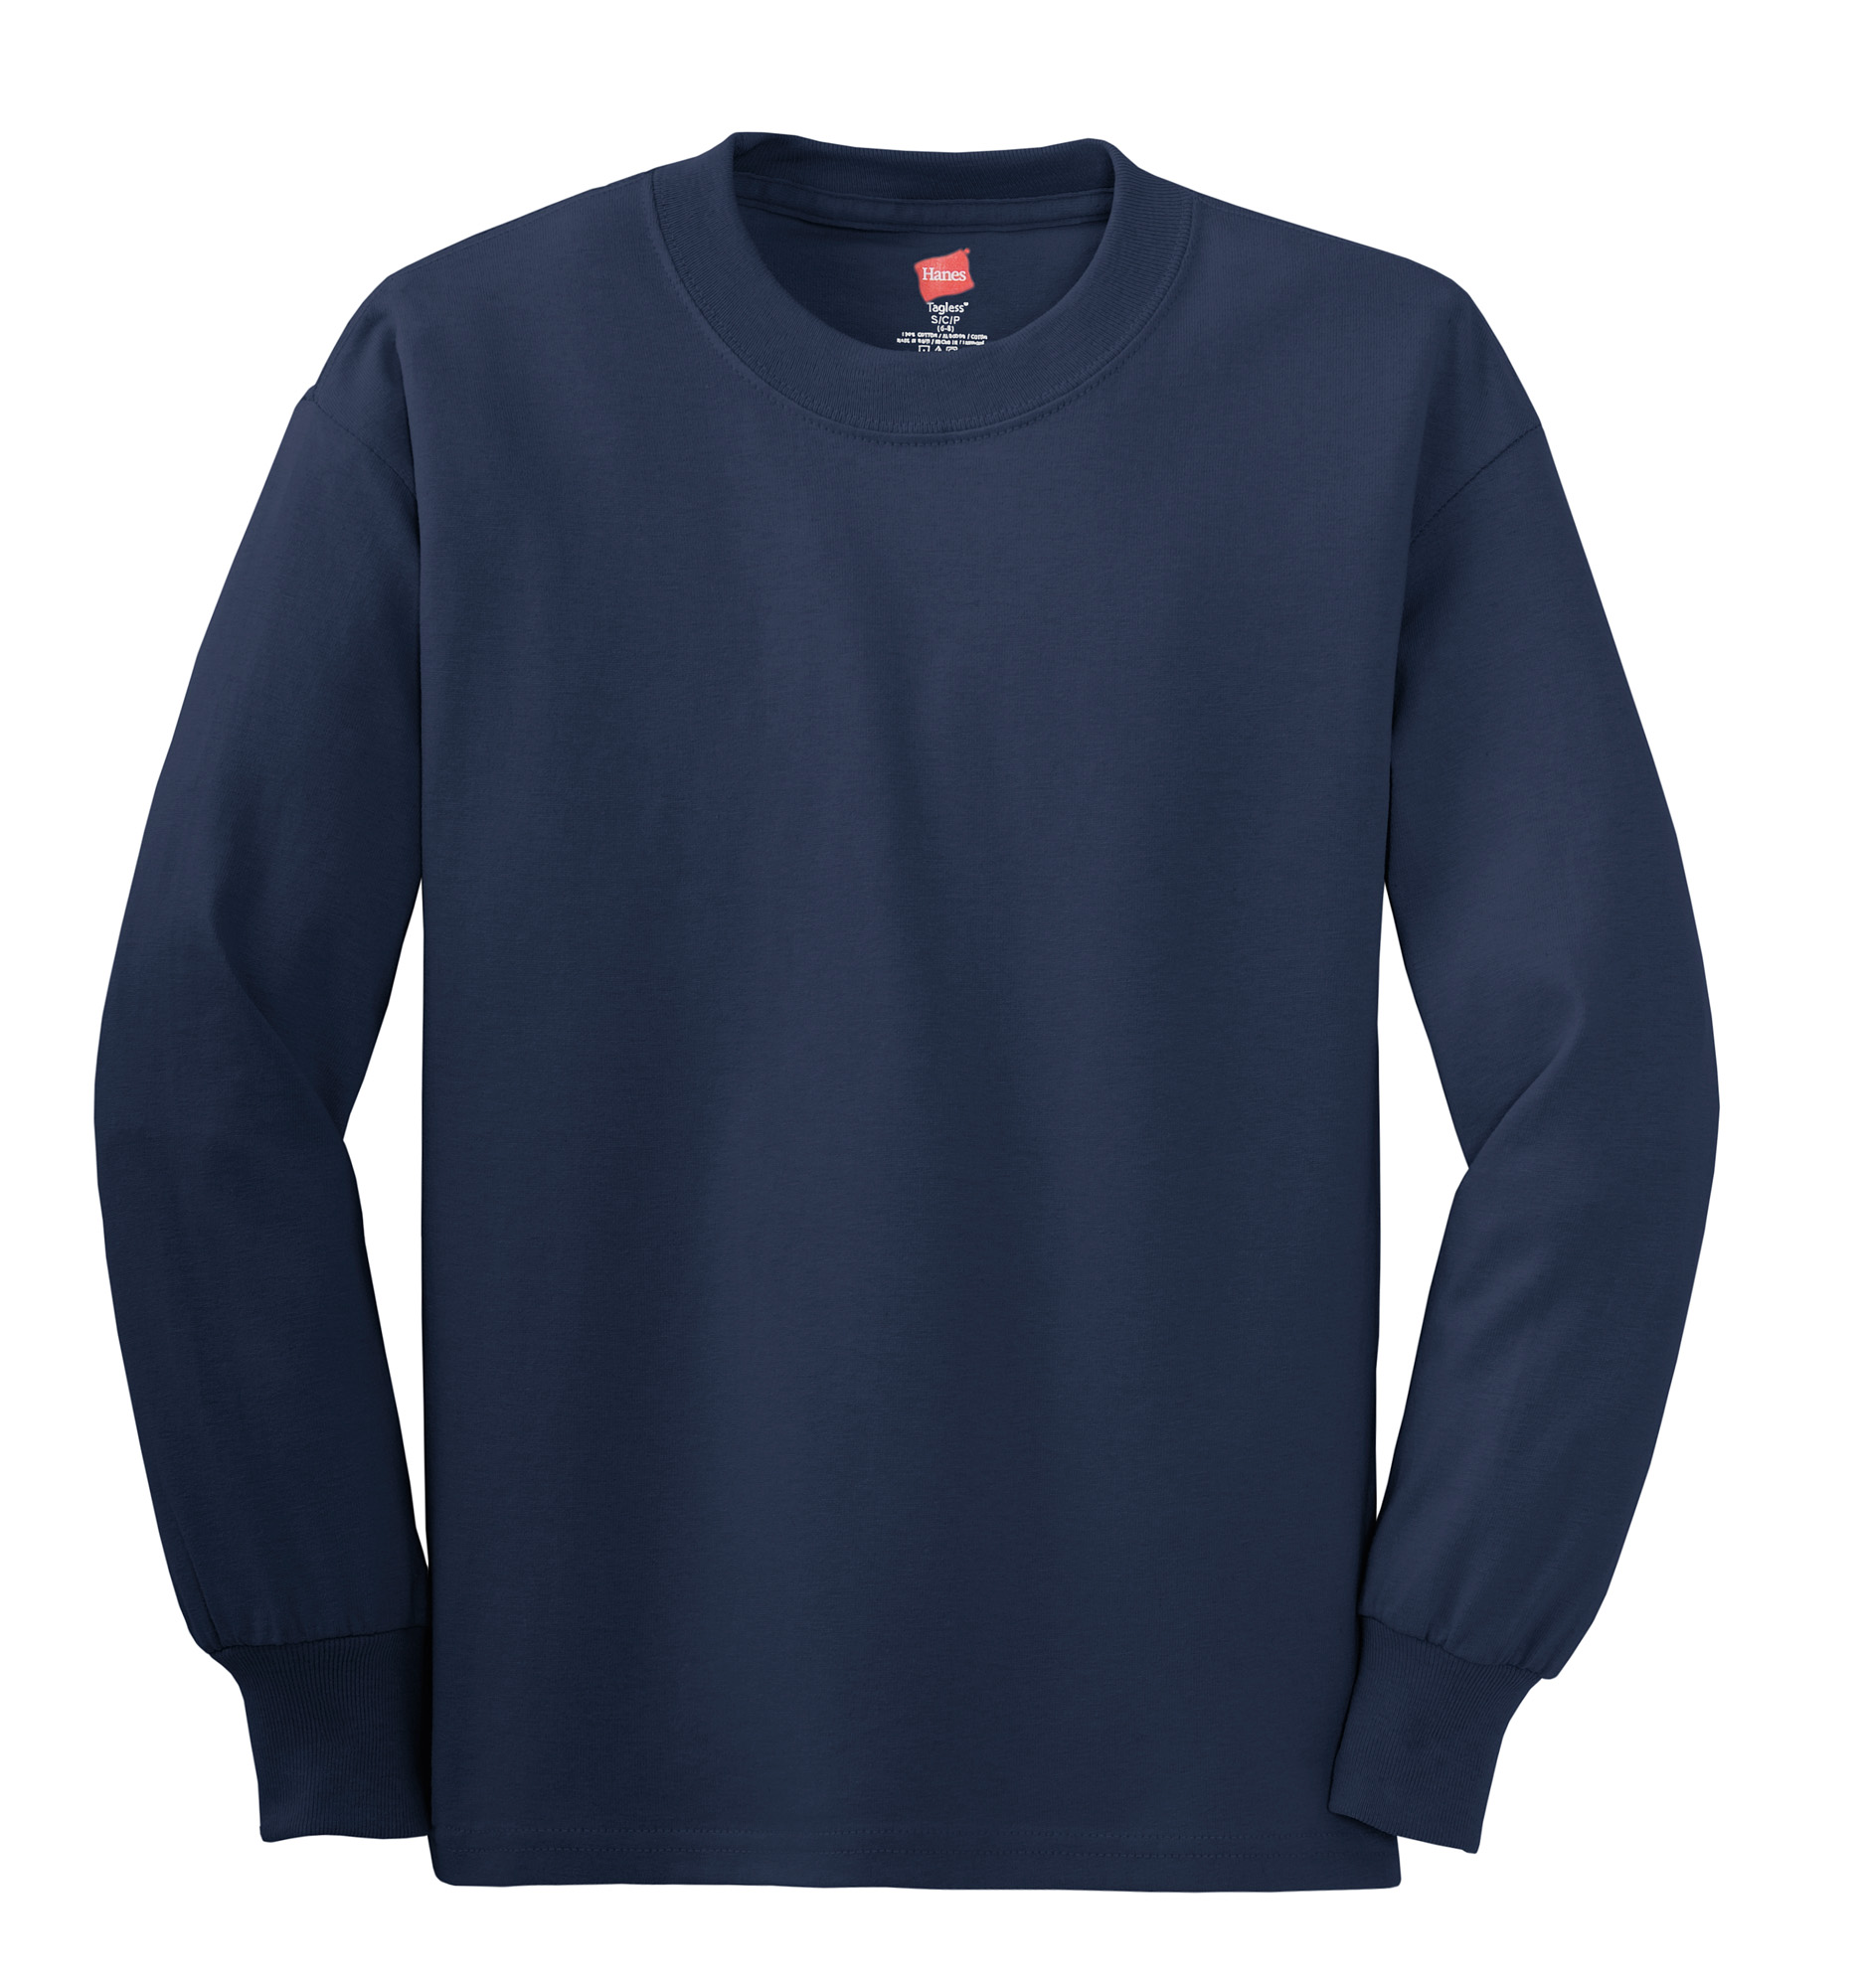 Light steel hanes tagless 100 cotton long sleeve t shirt for Mens 100 cotton long sleeve t shirts